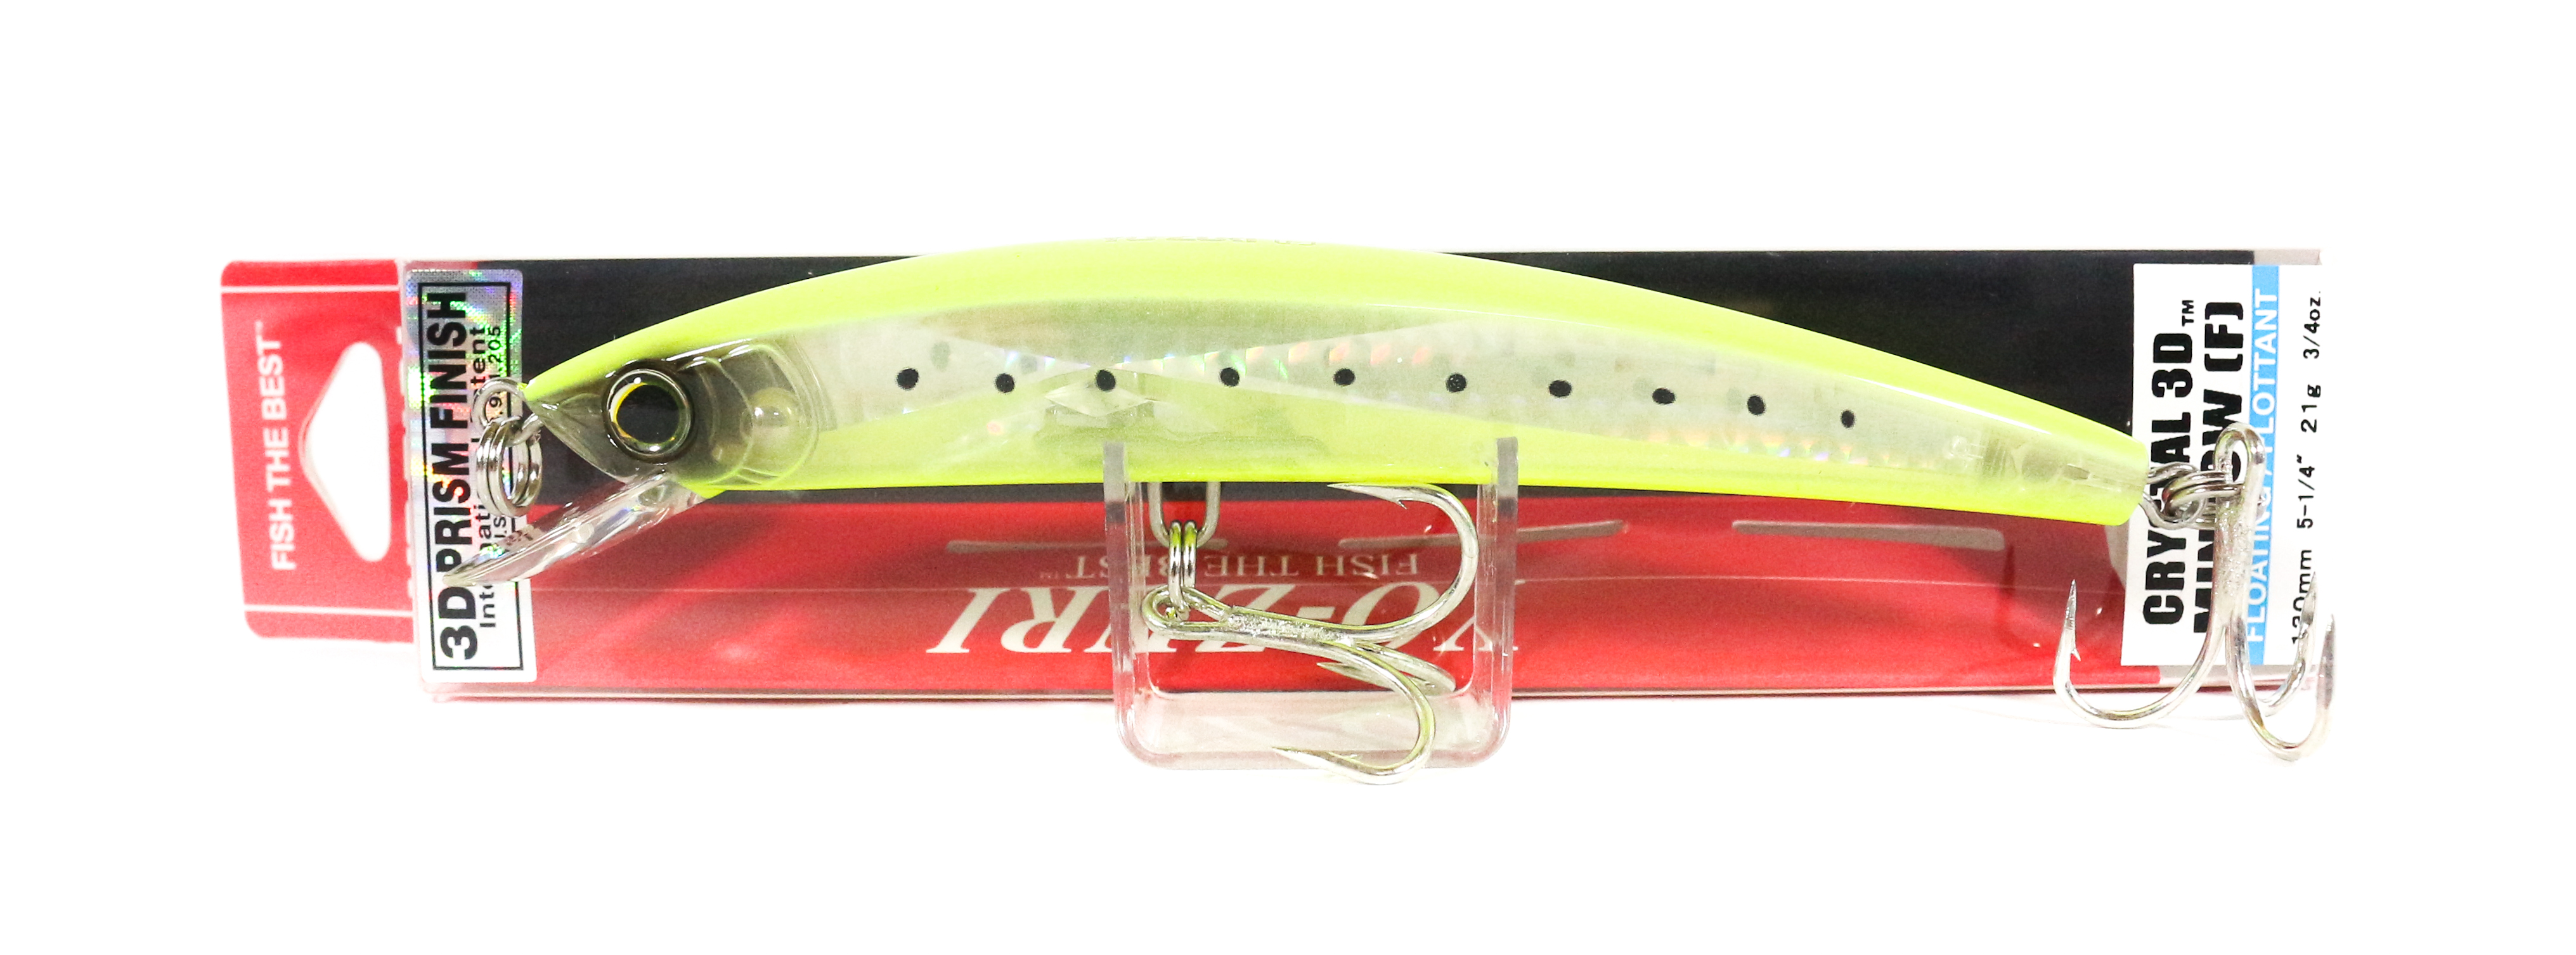 Yo Zuri 3D Crystal Minnow 130 mm Floating Lure F1147-GHCS (5860)